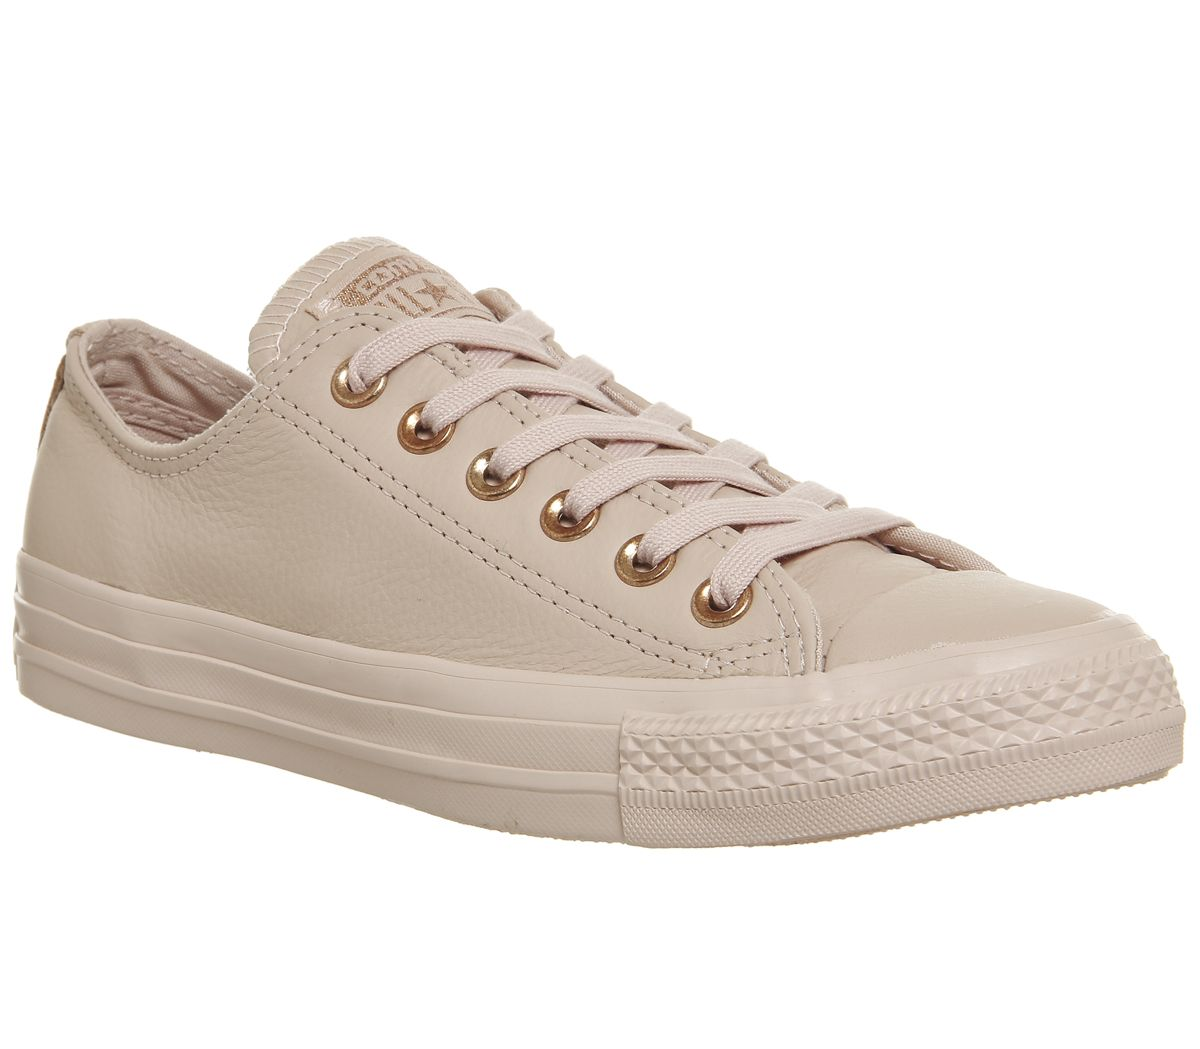 1f4235d75b8 Converse All Star Low Leather Dusk Pink Rose Gold Exclusive - Hers ...